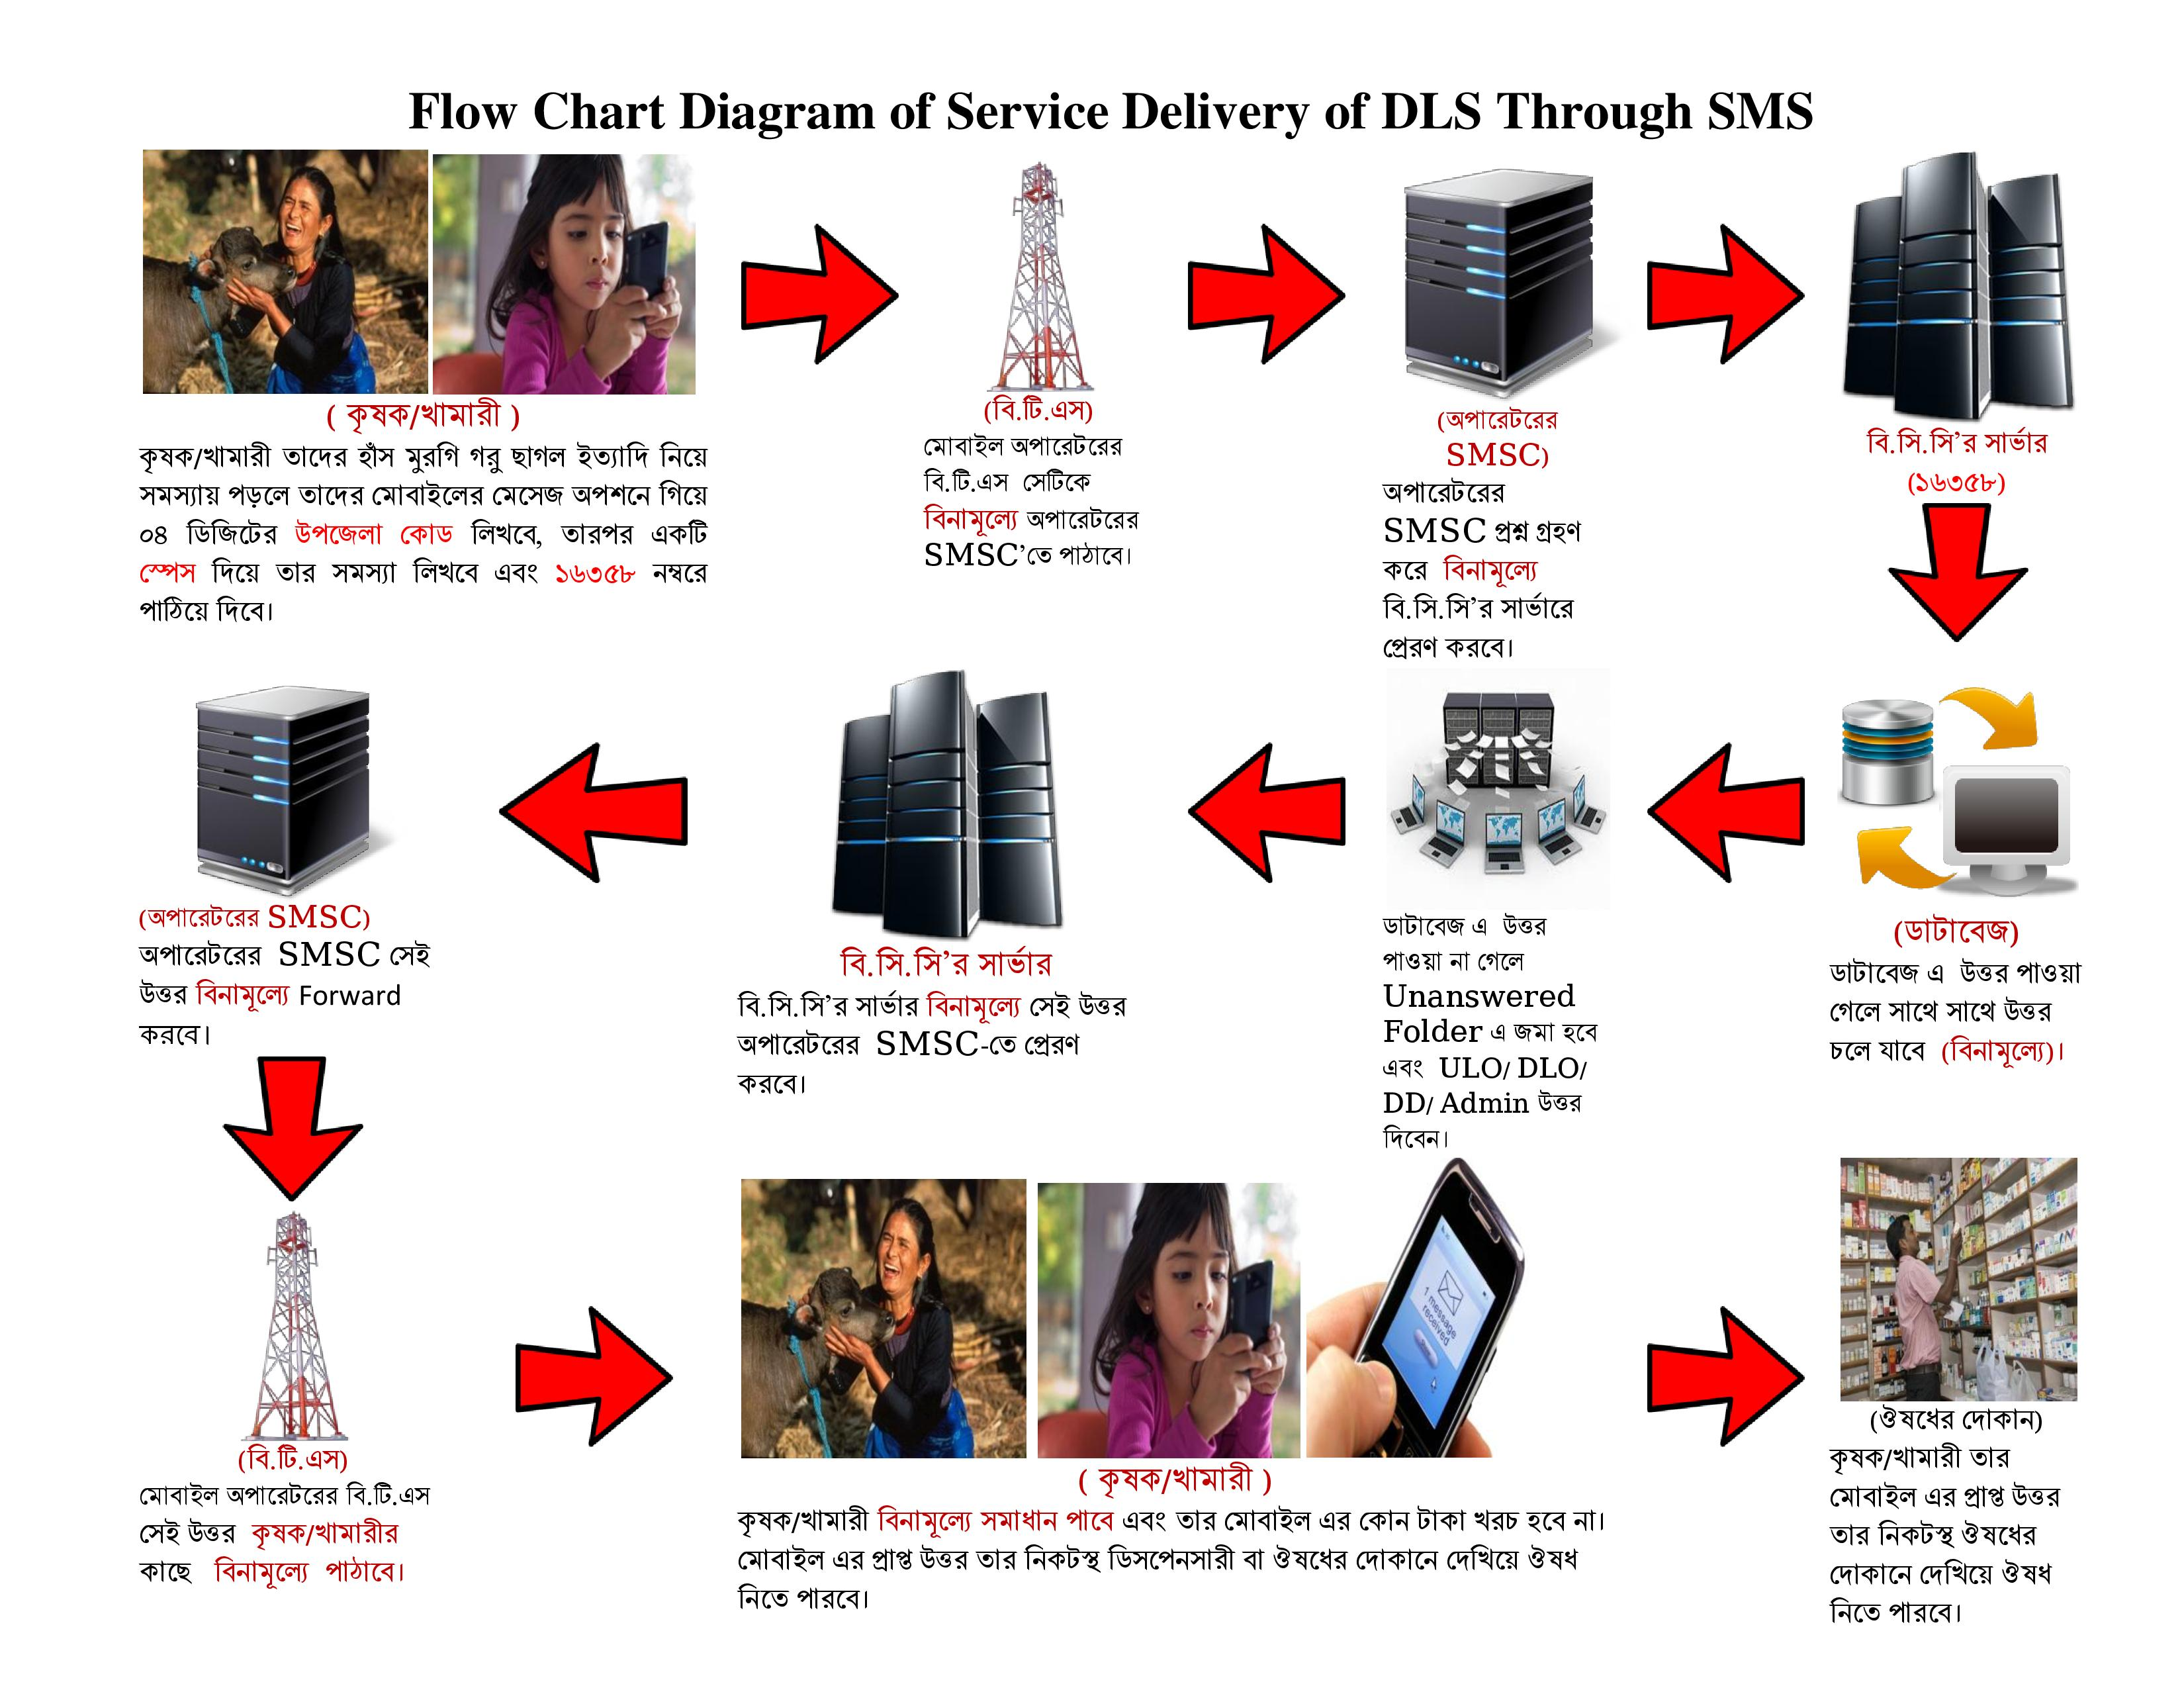 SMS Service of DLS